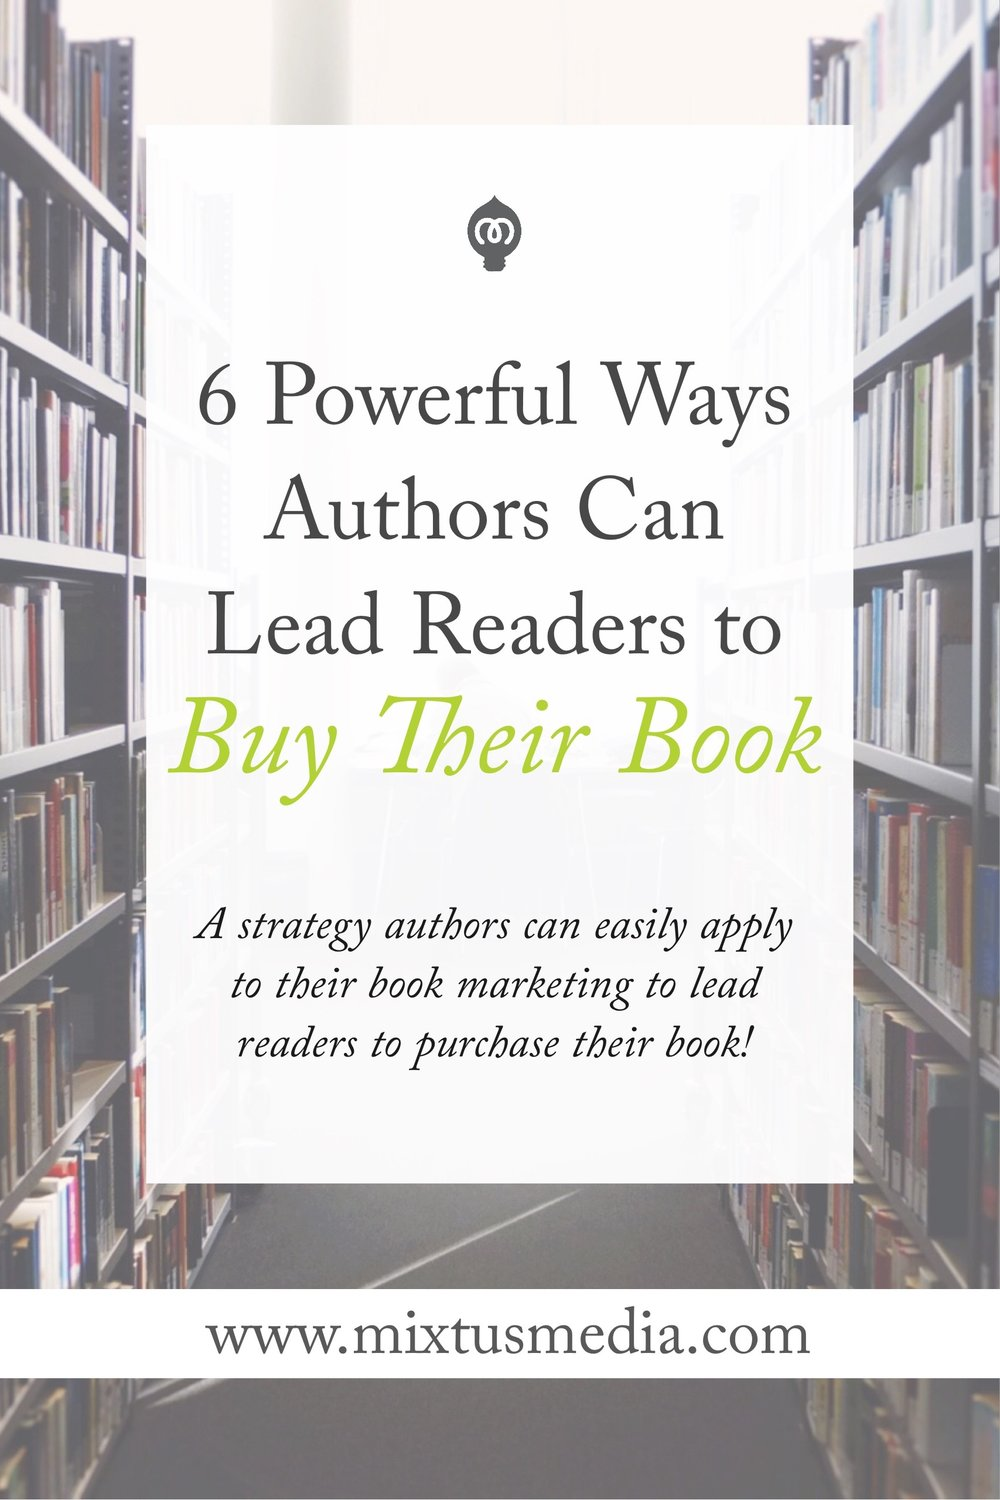 A strategy authors can easily apply to their book marketing to lead readers to purchase their book!